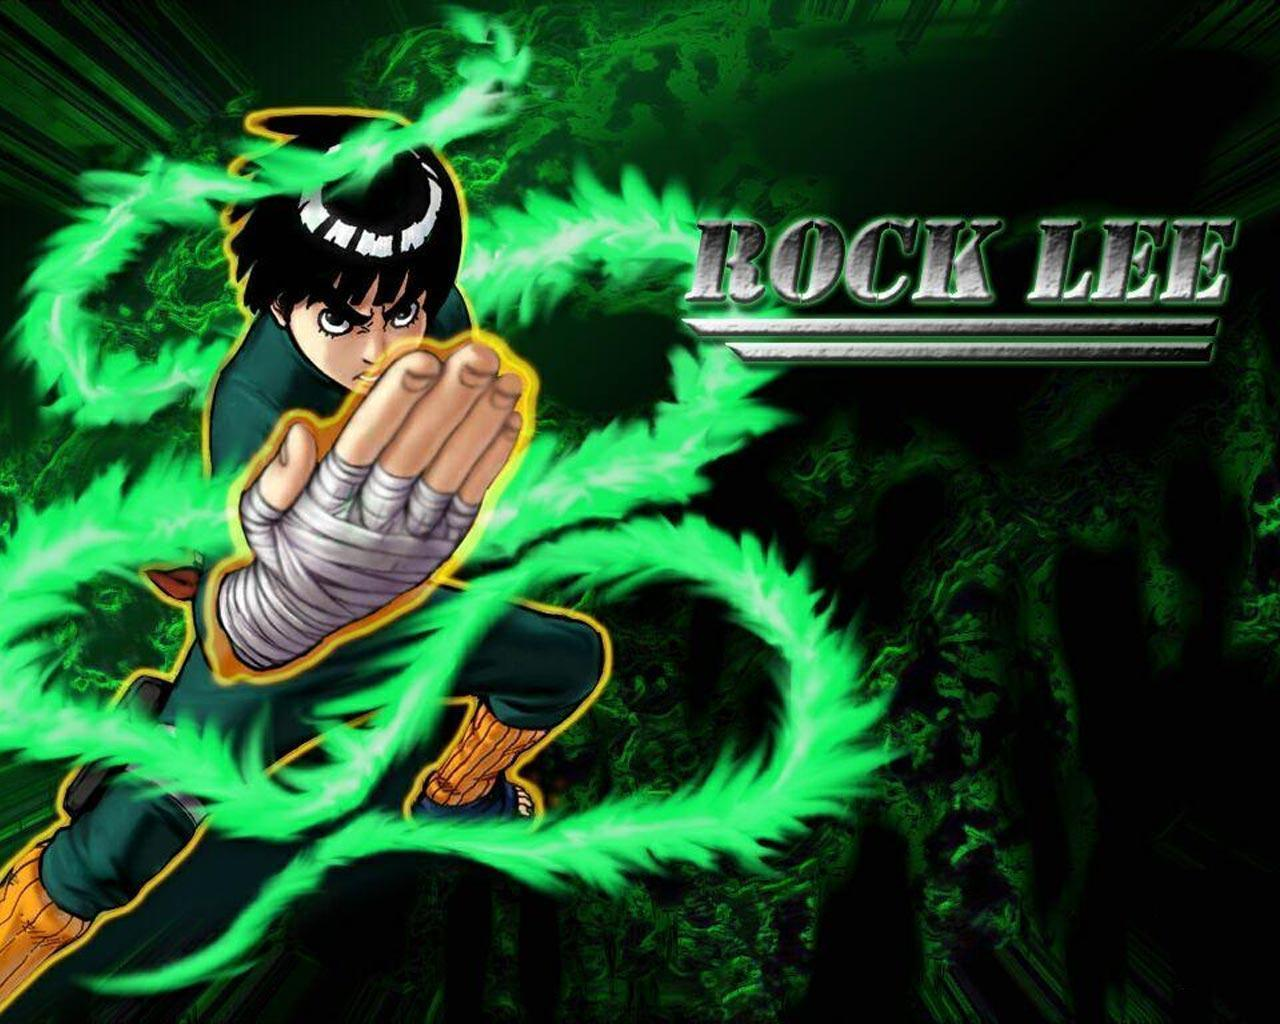 Rock Lee Wallpapers - Wallpaper Cave Gaara And Rock Lee Vs Kimimaro